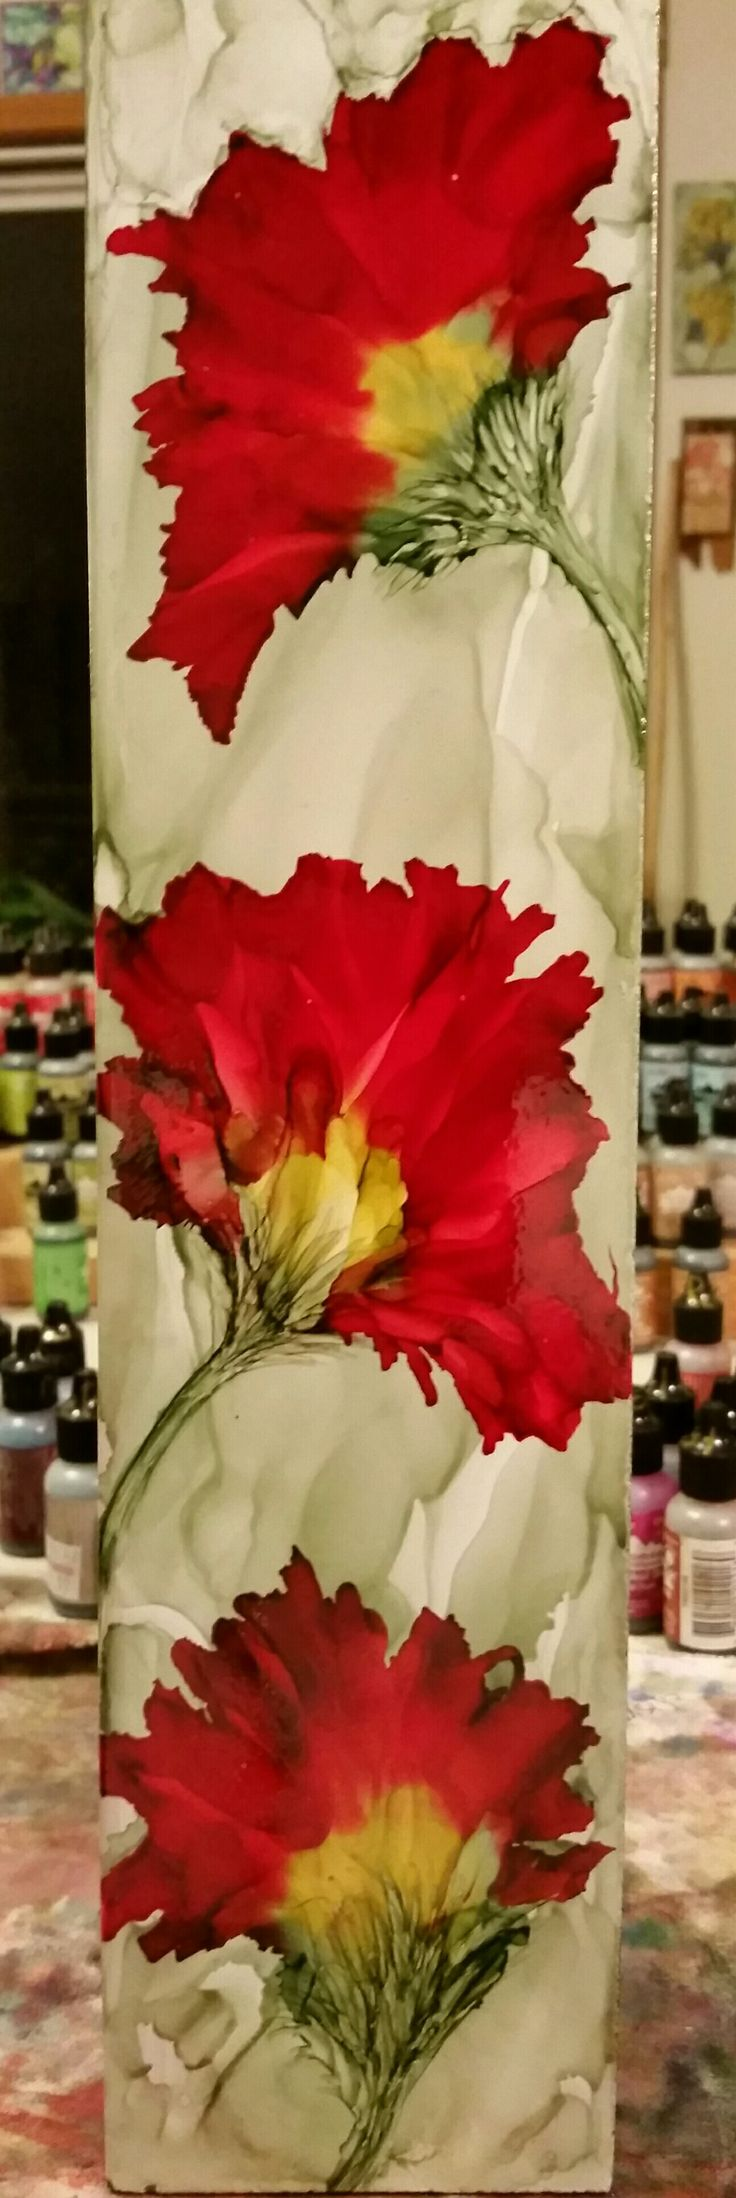 Poppies on long 14x3.5 inch ceramic tile in alcohol ink by Tina